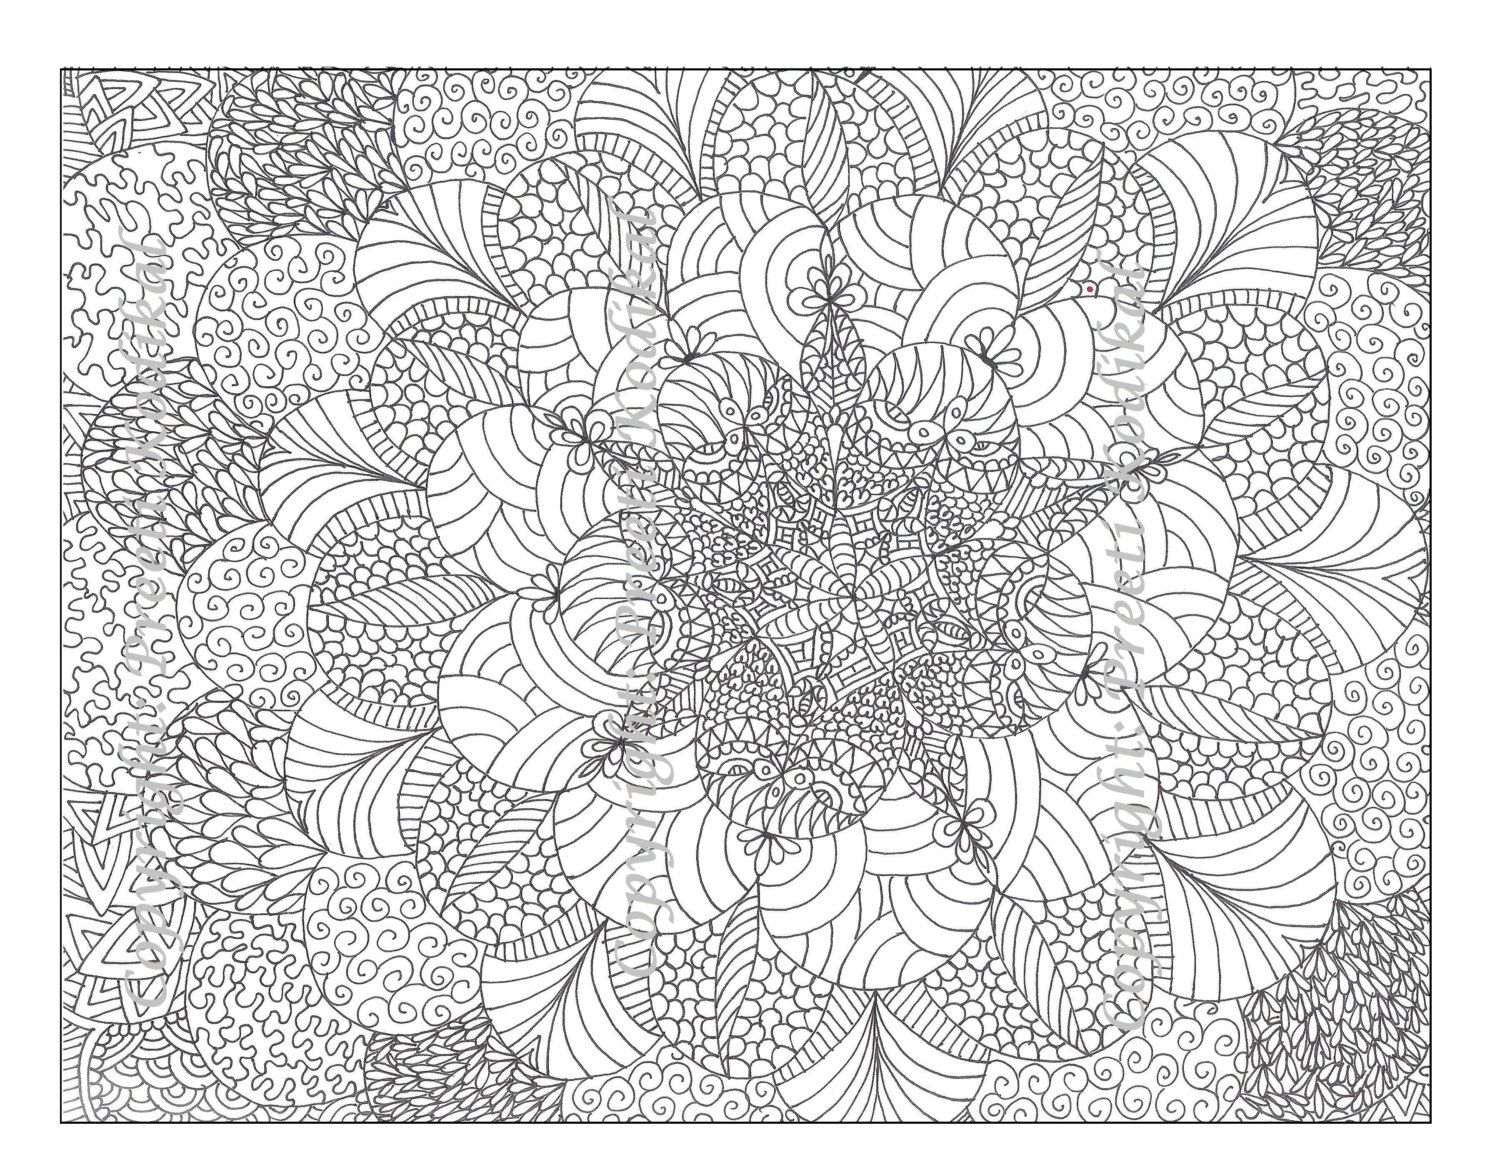 Free printable zentangle coloring pages for adults - Henna Coloring Pages Pen Illustration Printable Coloring Page Zentangle Inspired Henna Or